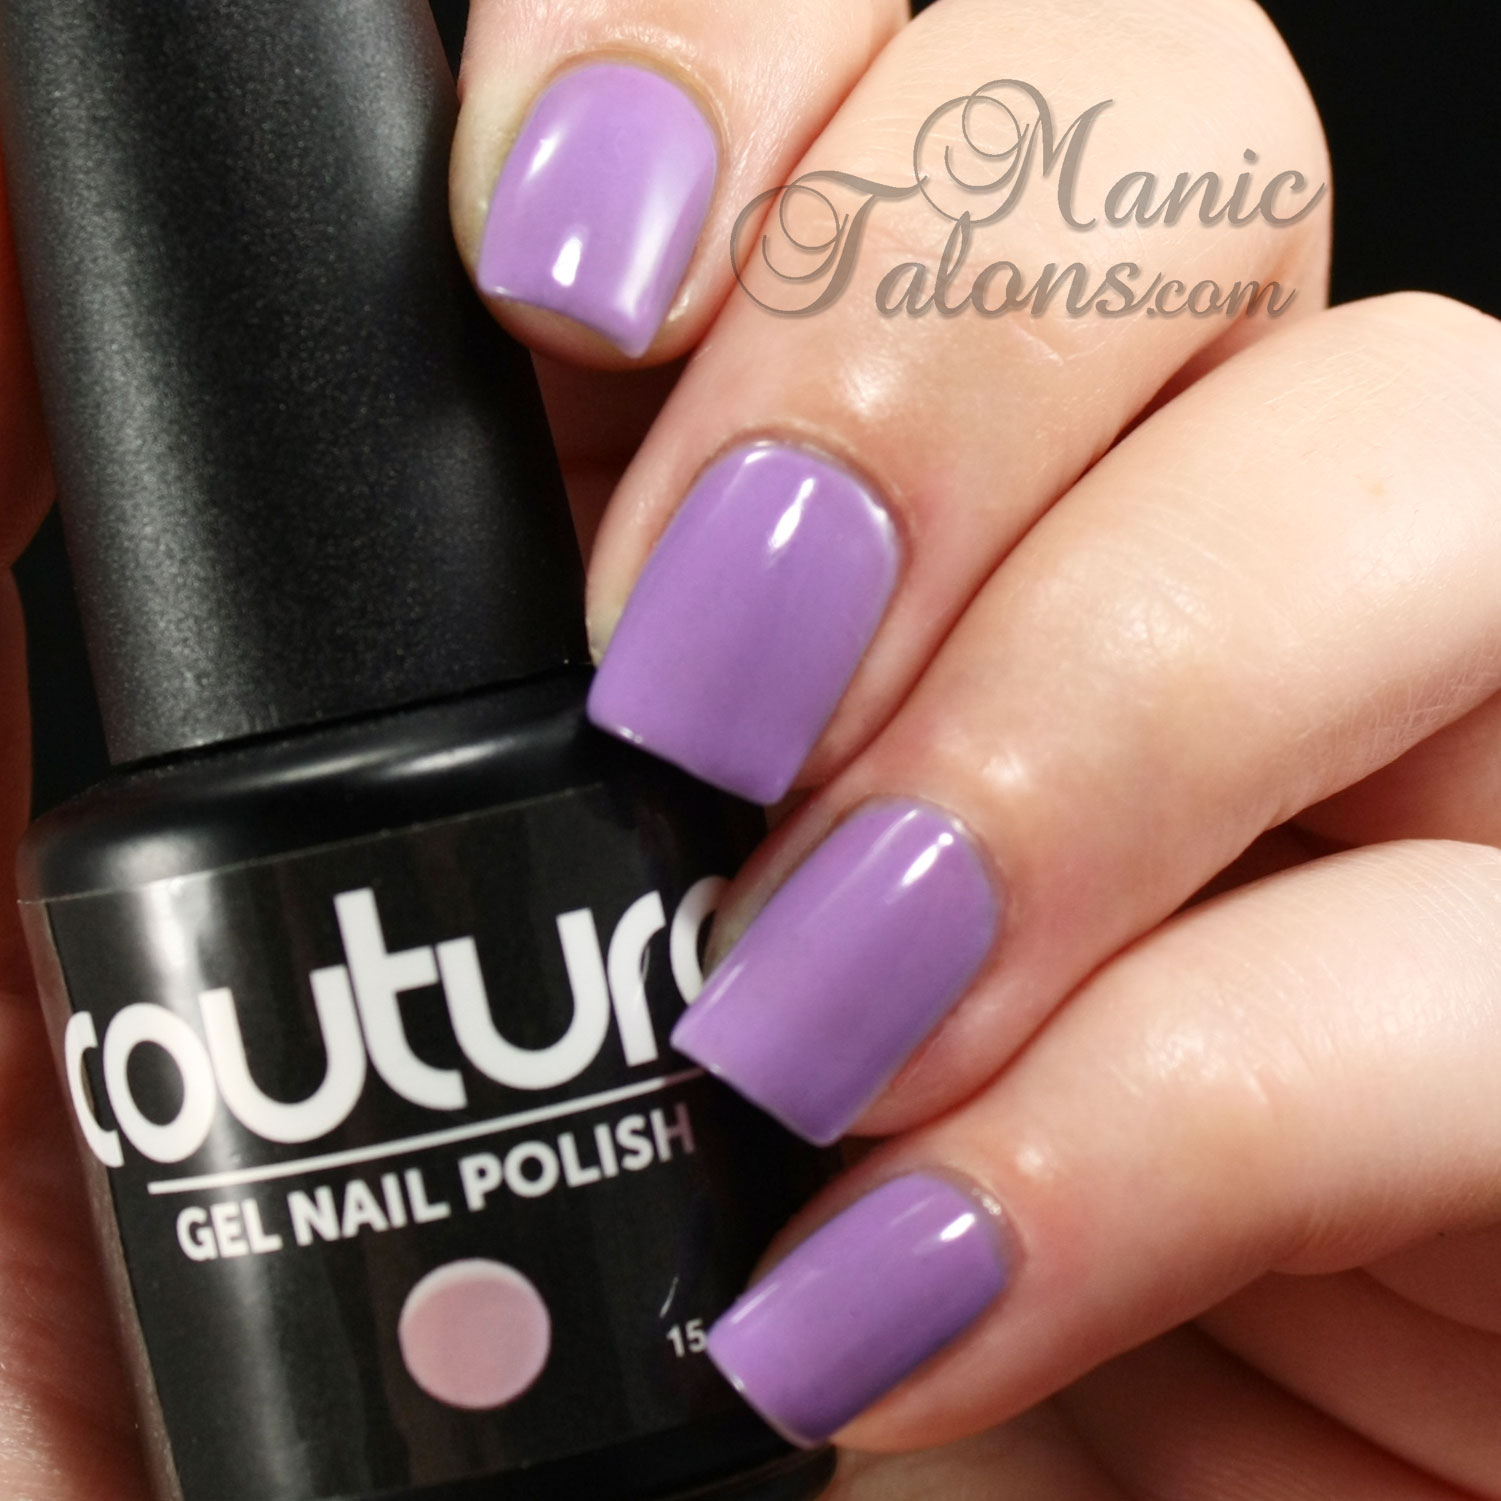 Couture Gel Polish Cashmere Swatch